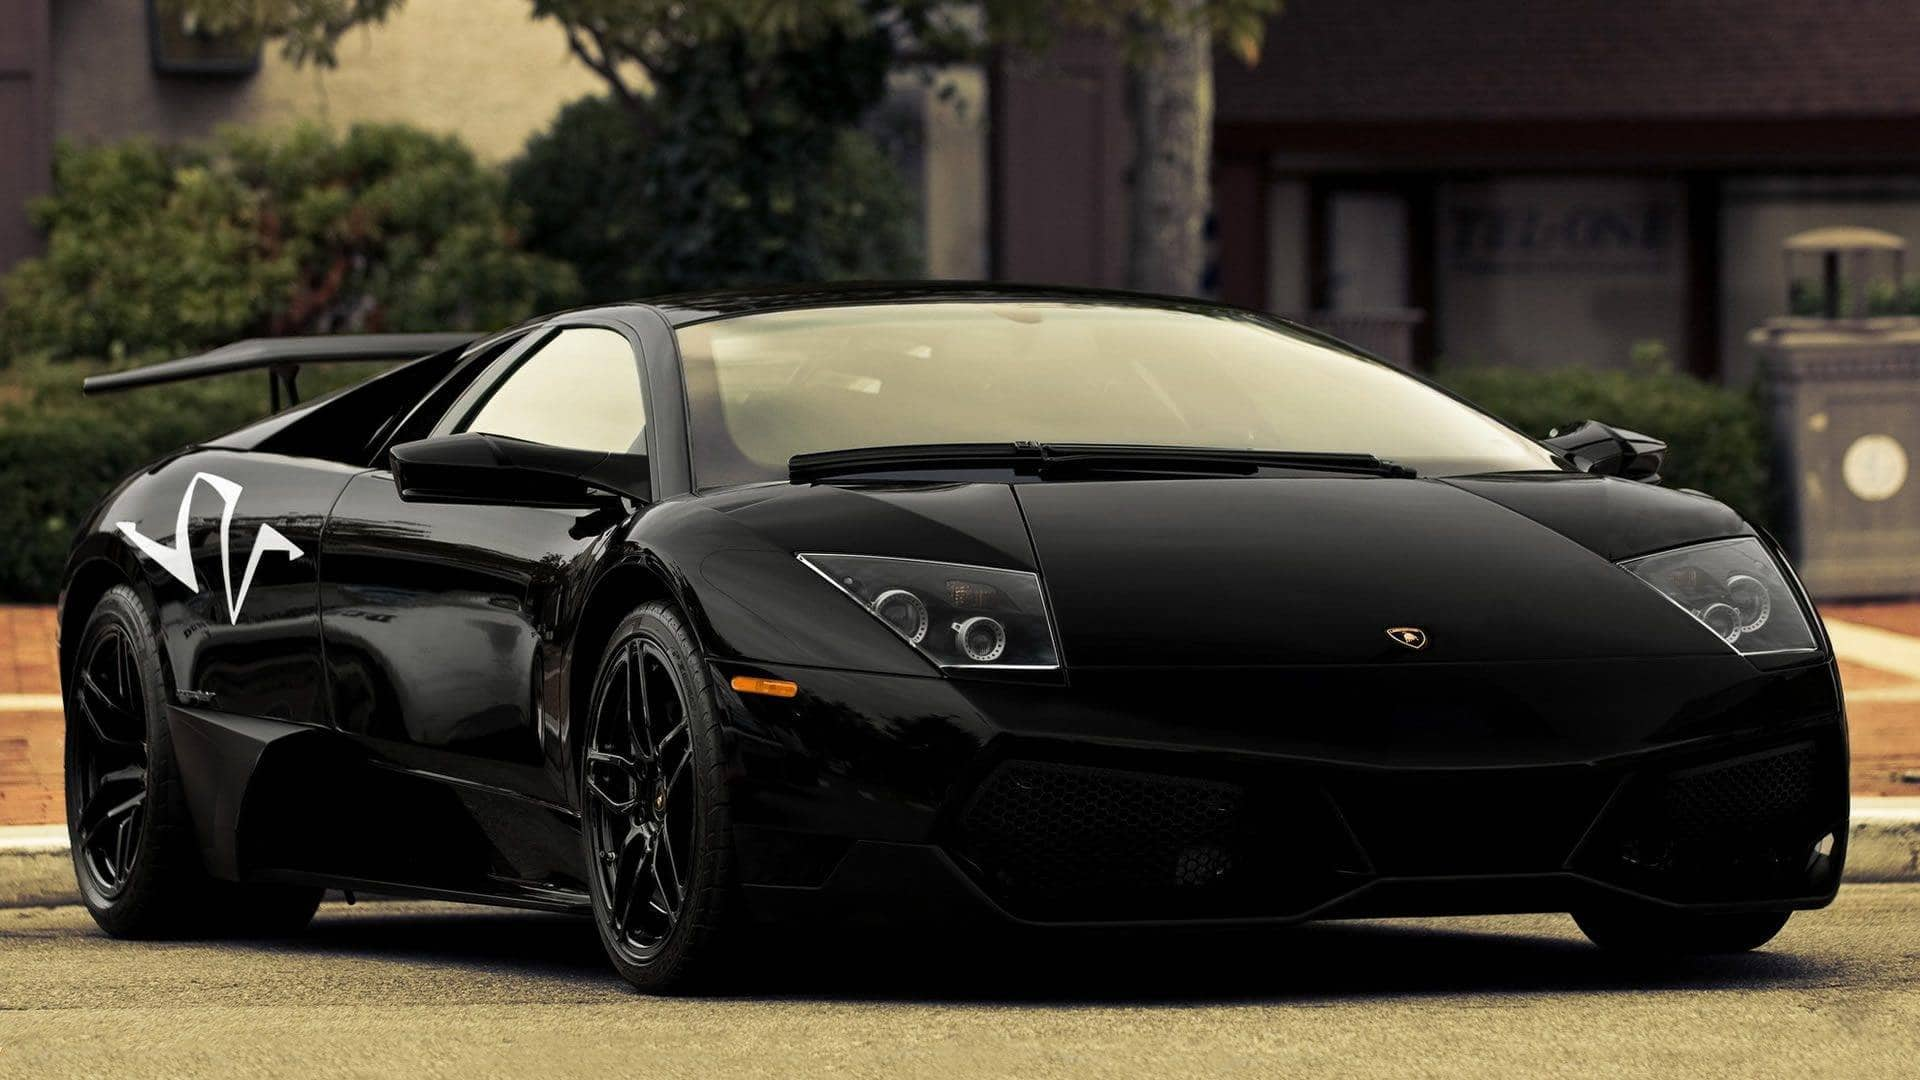 Lamborghini - the raging bull